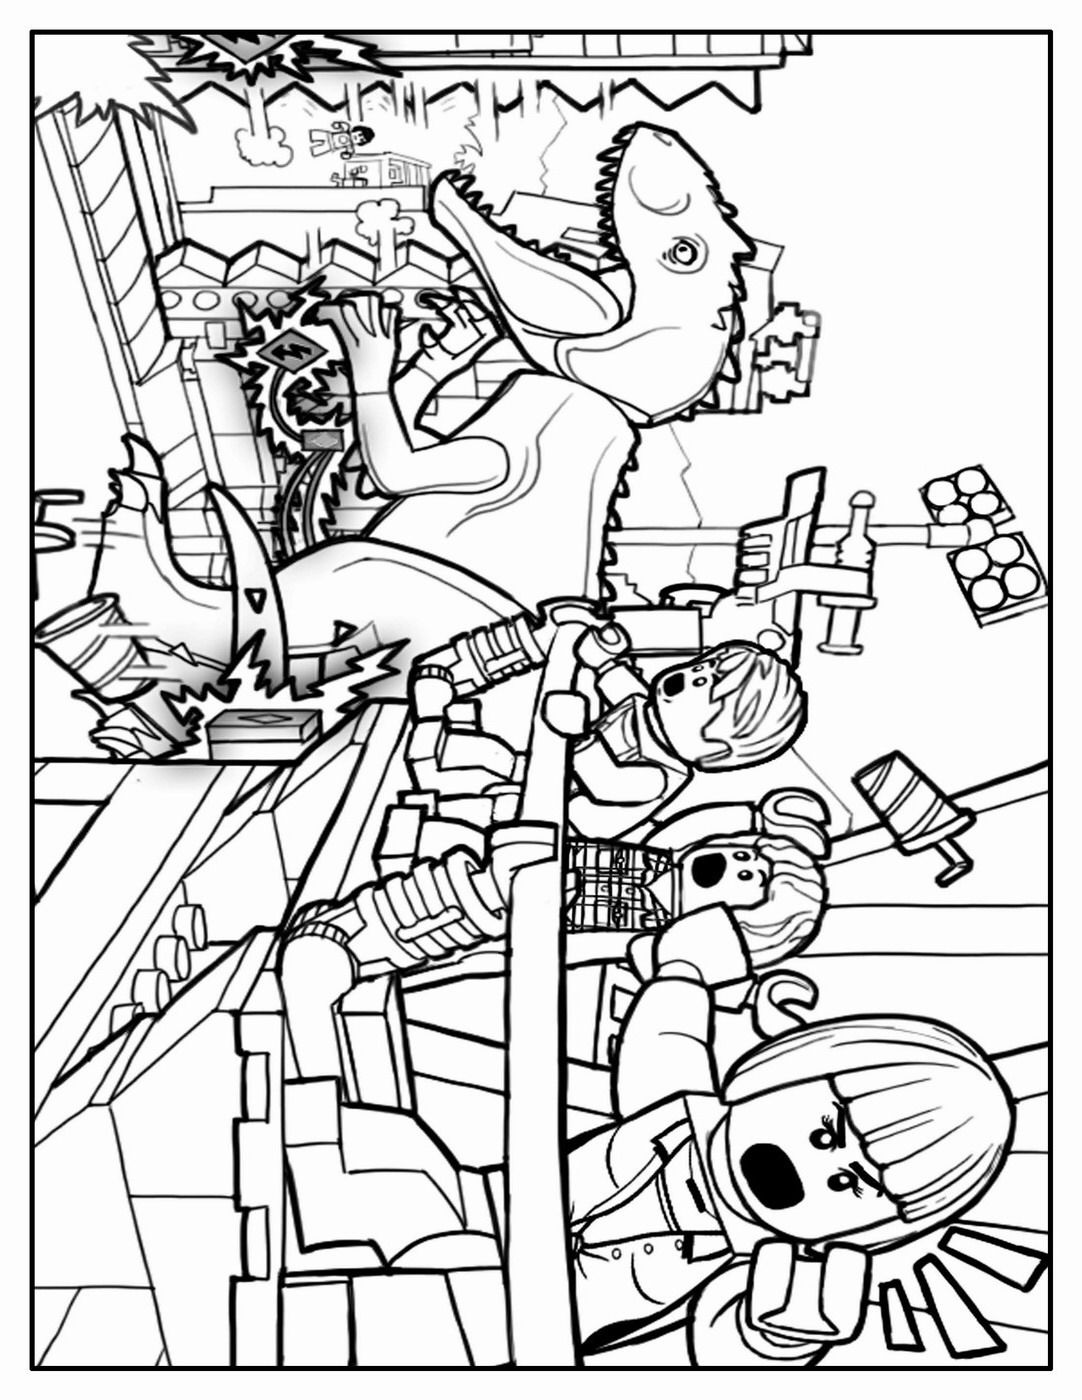 Printable coloring pages jurassic world - 9 Pics Of Lego Printable Coloring Pages Jurassic World Jurassic